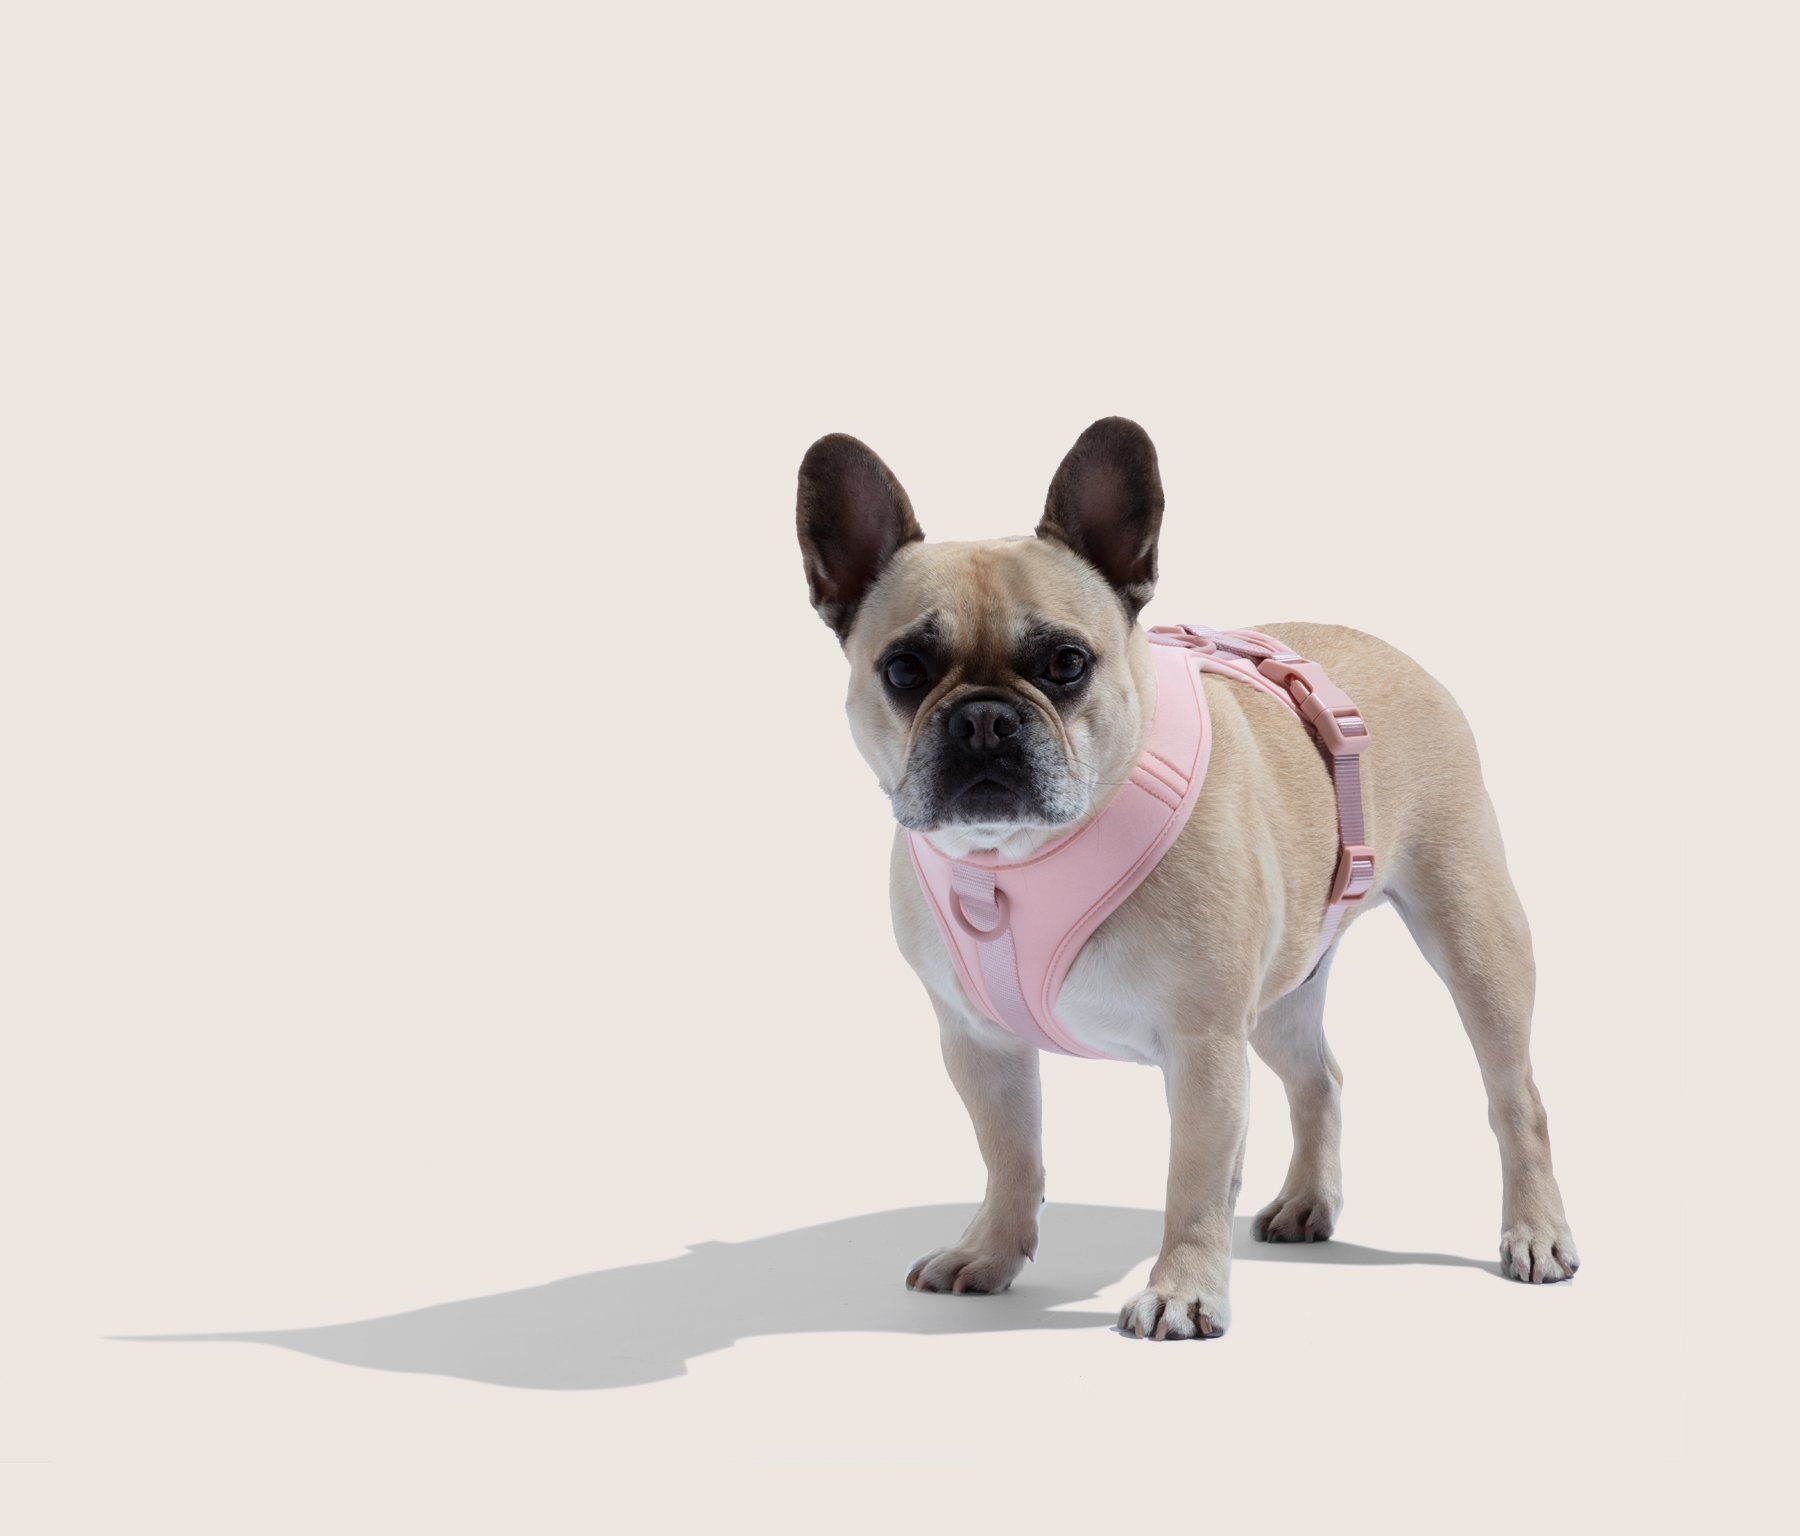 Harness Puppy Collars Dog Harness Dog Walking